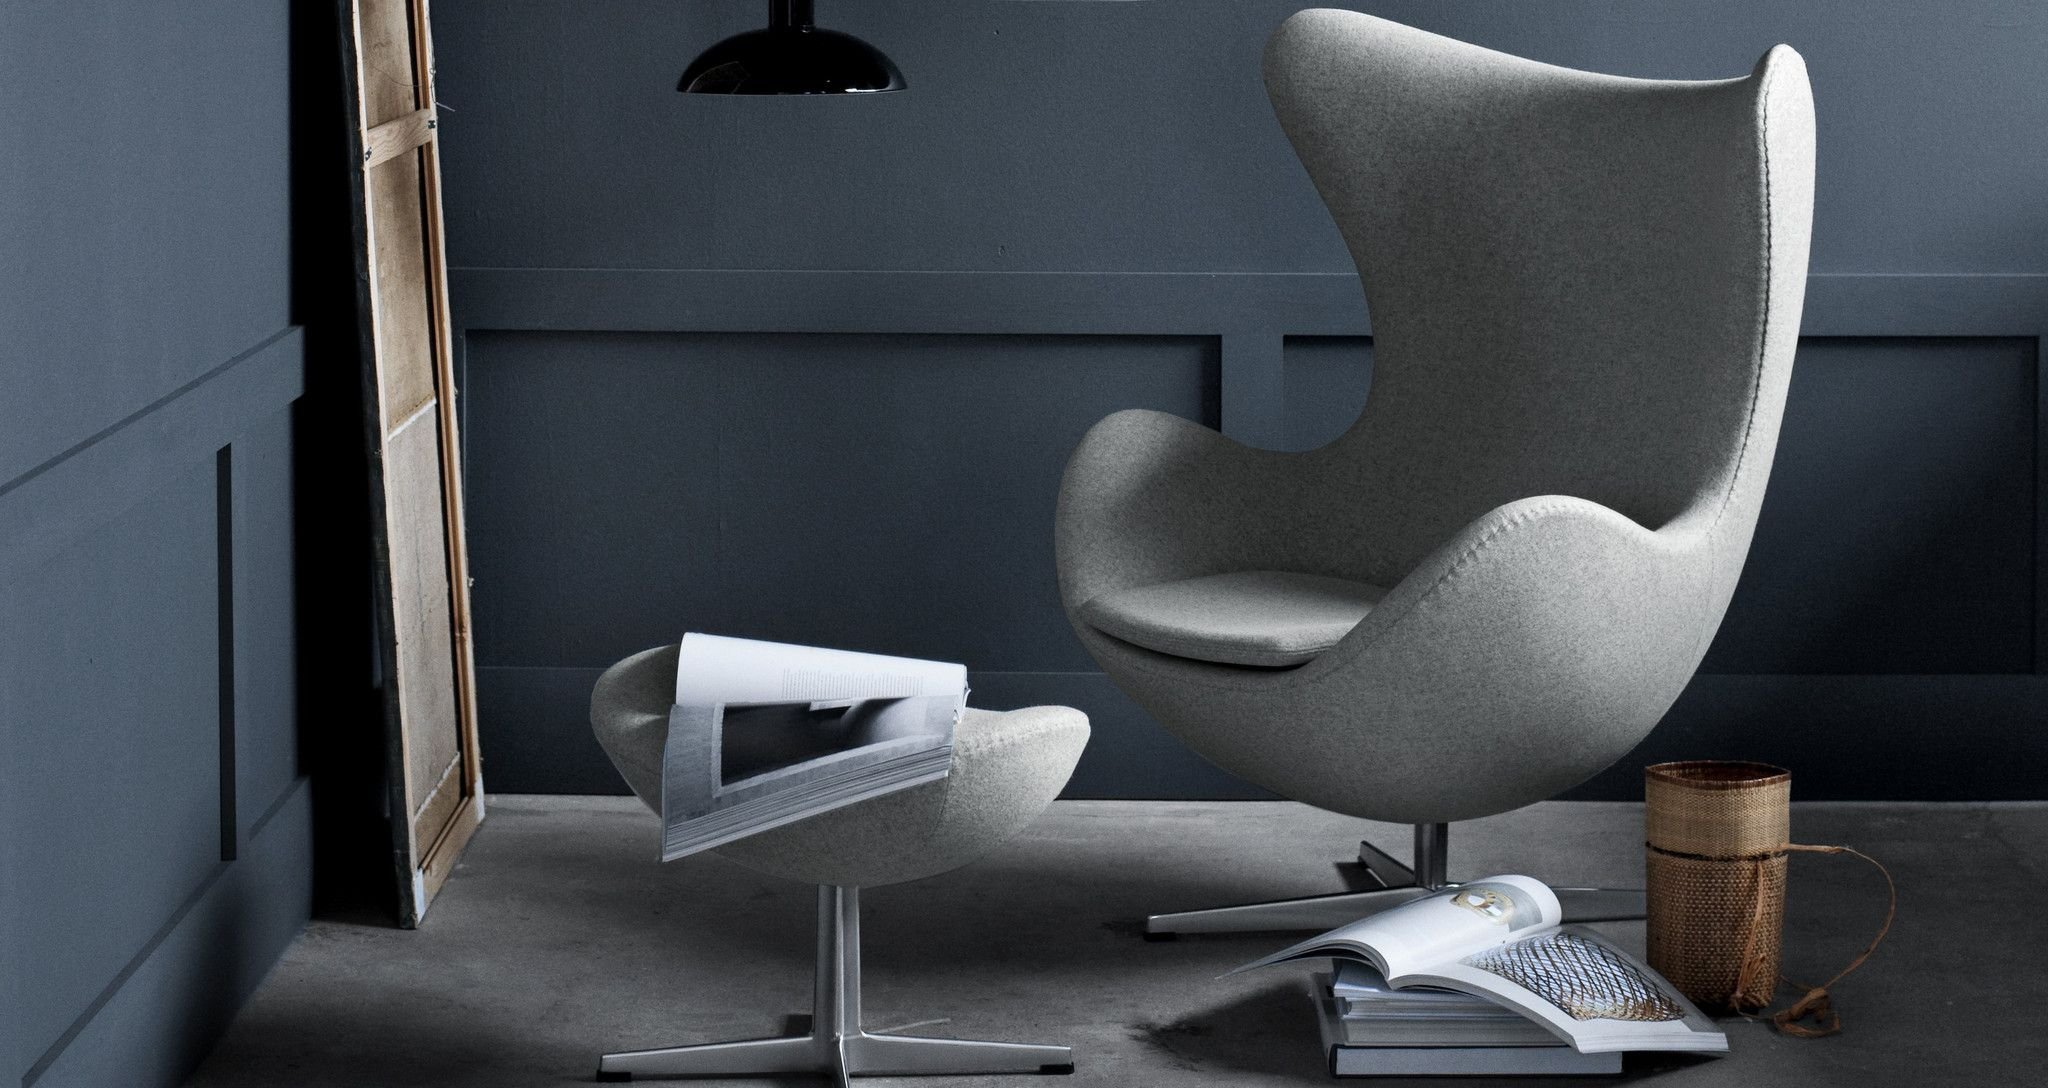 Exceptionnel The Fritz Hansen Egg Chair Is An Arne Original Design Classic Classic.  Designed In 1958 For The SAS Royal Hotel In Copenhagen It Comes In A Large  Range Of ...